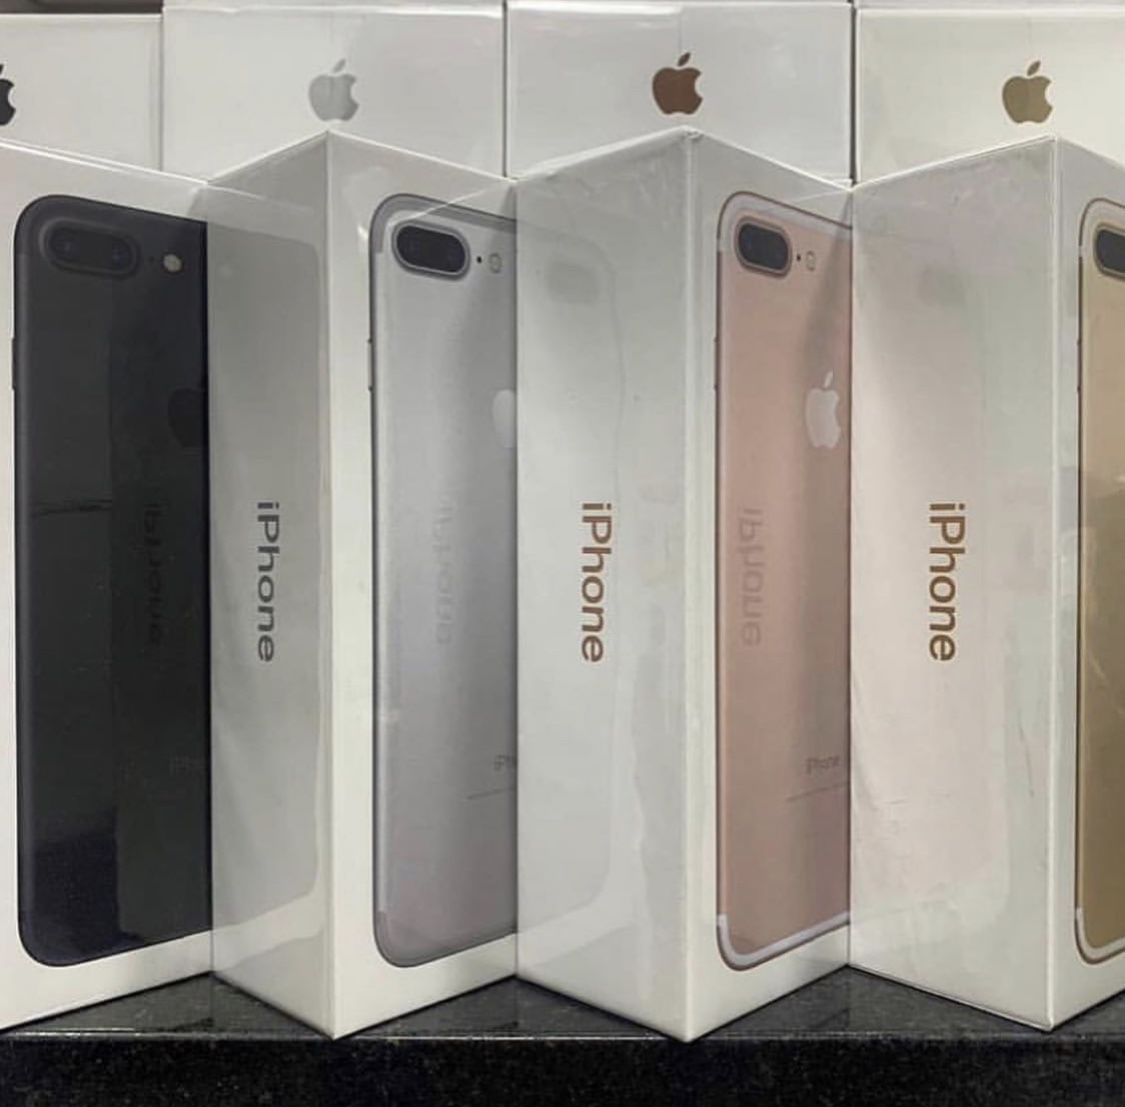 Garantie 12Luni Apple iPhone 5s,6,6s,7,7+,8,8+,X La Super Pret